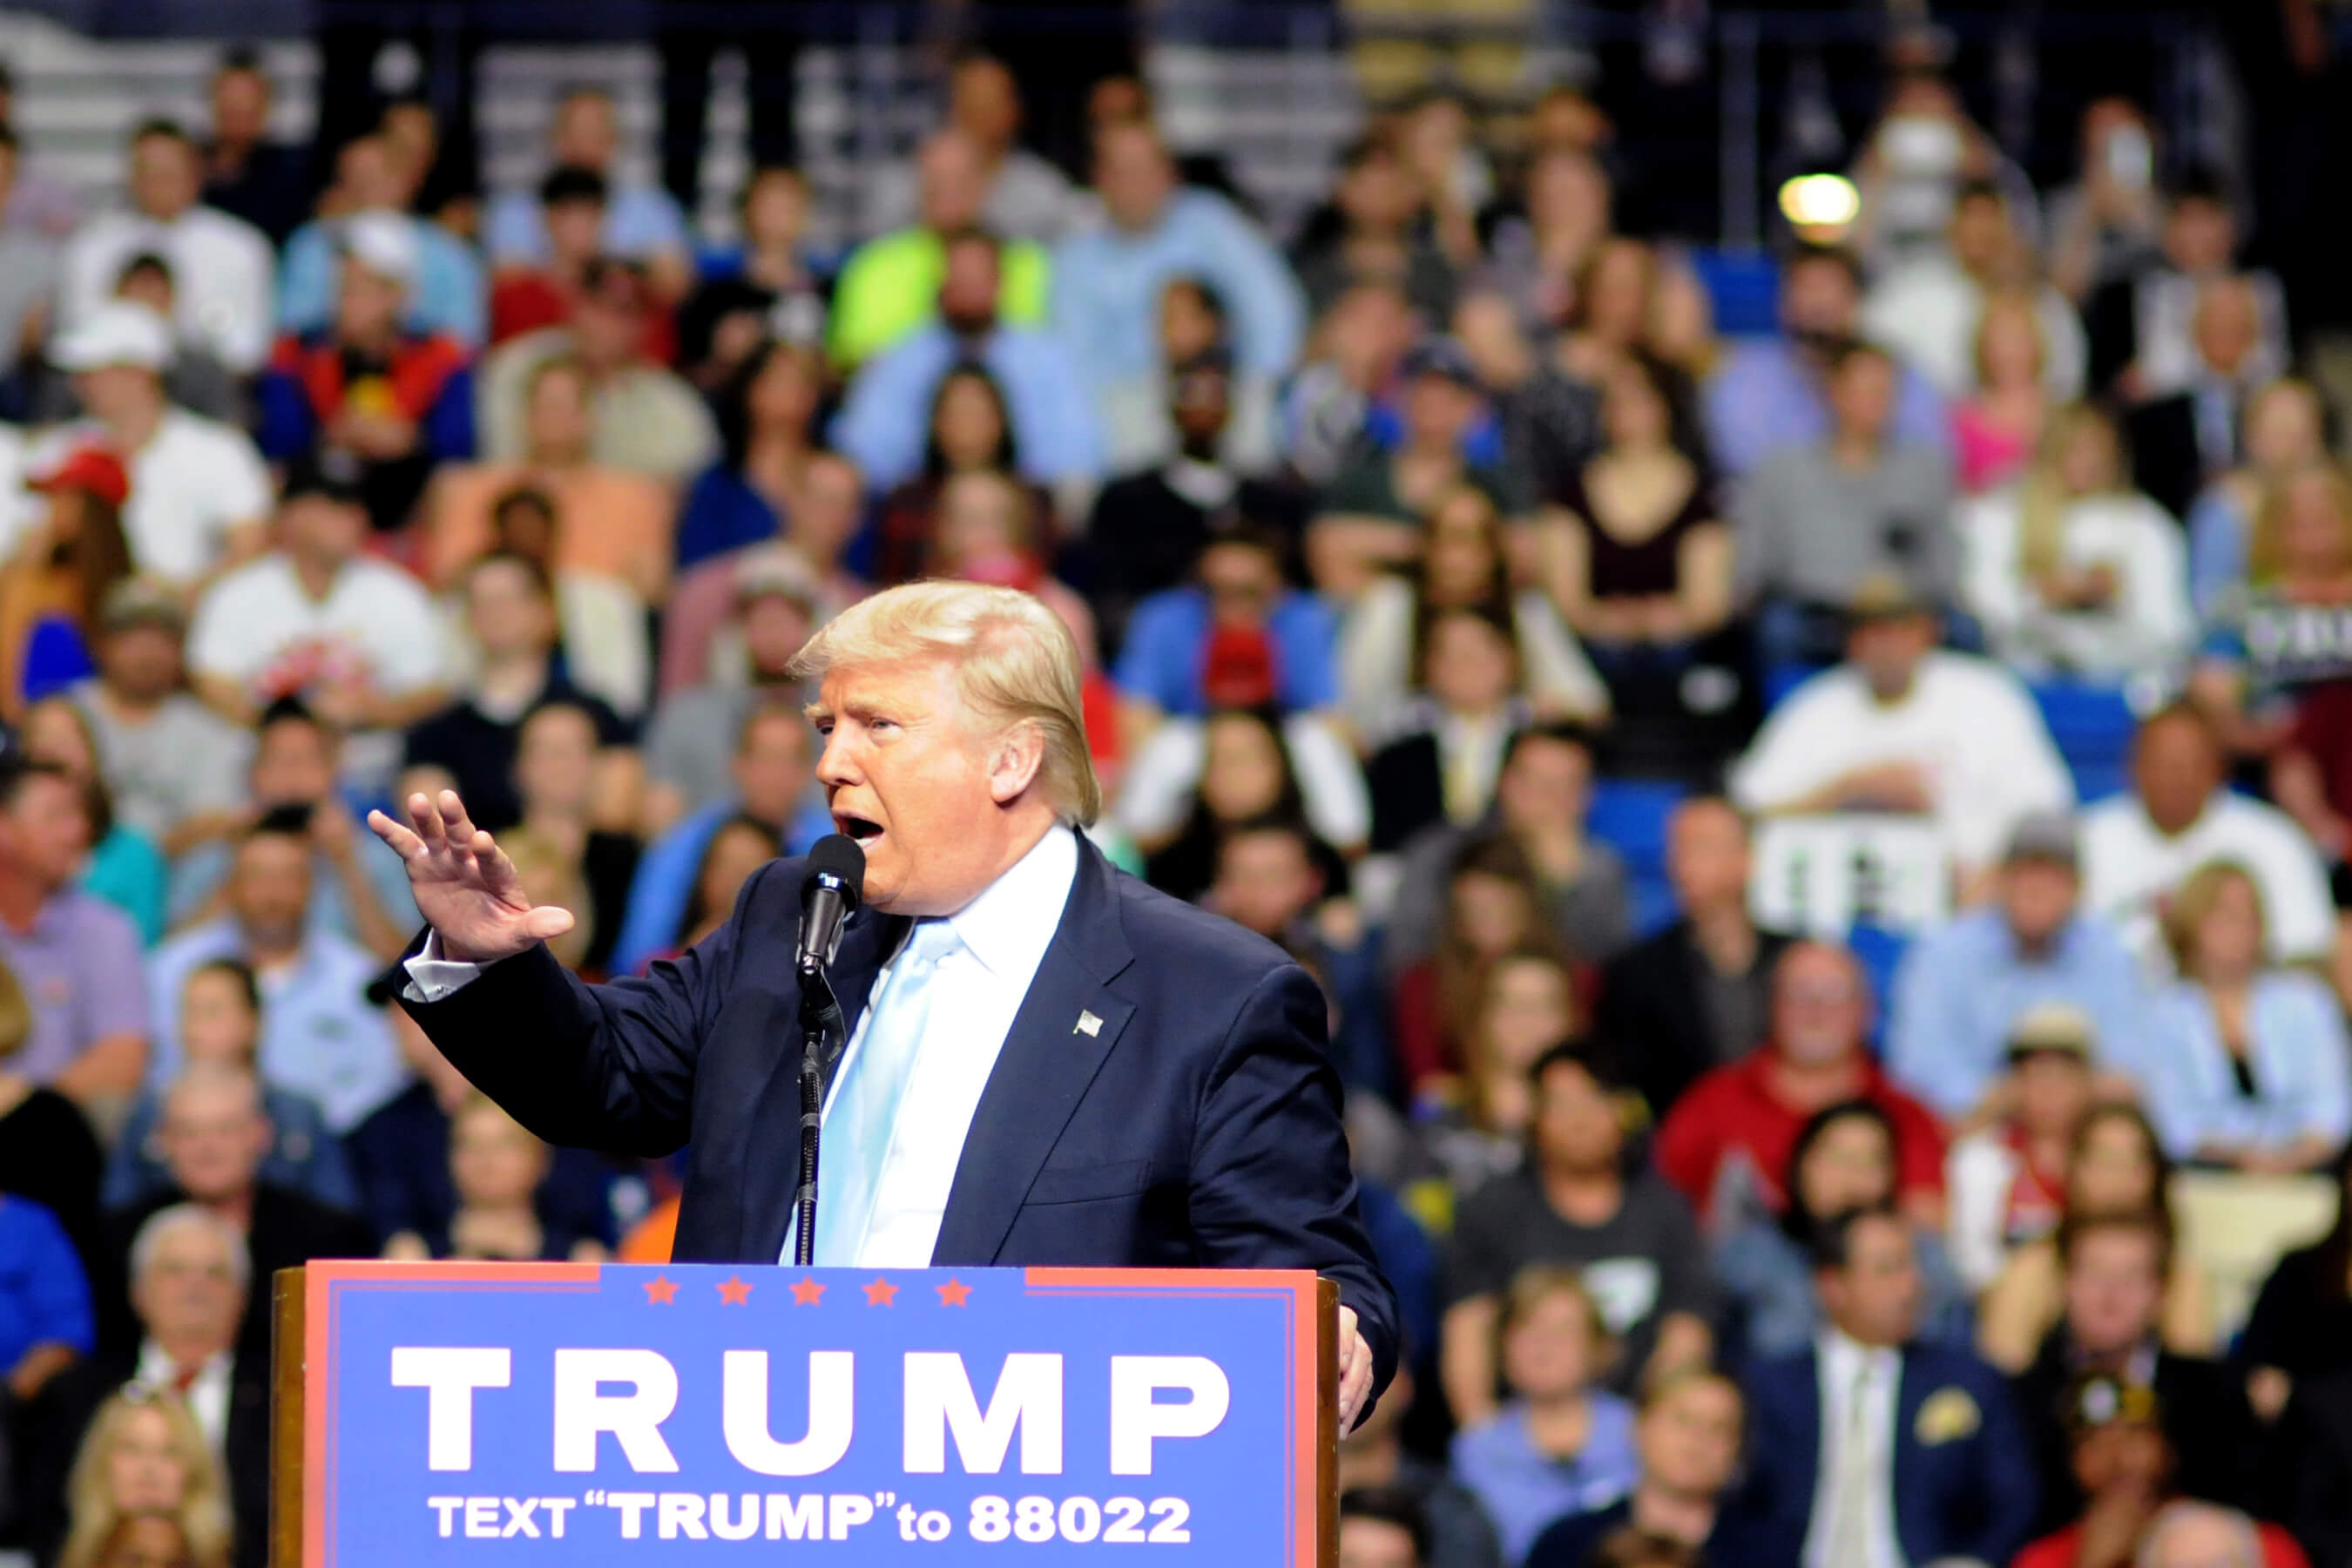 Presidential candidate Donald Trump campaigns in North Carolina. (Photo: Trump Campaign)